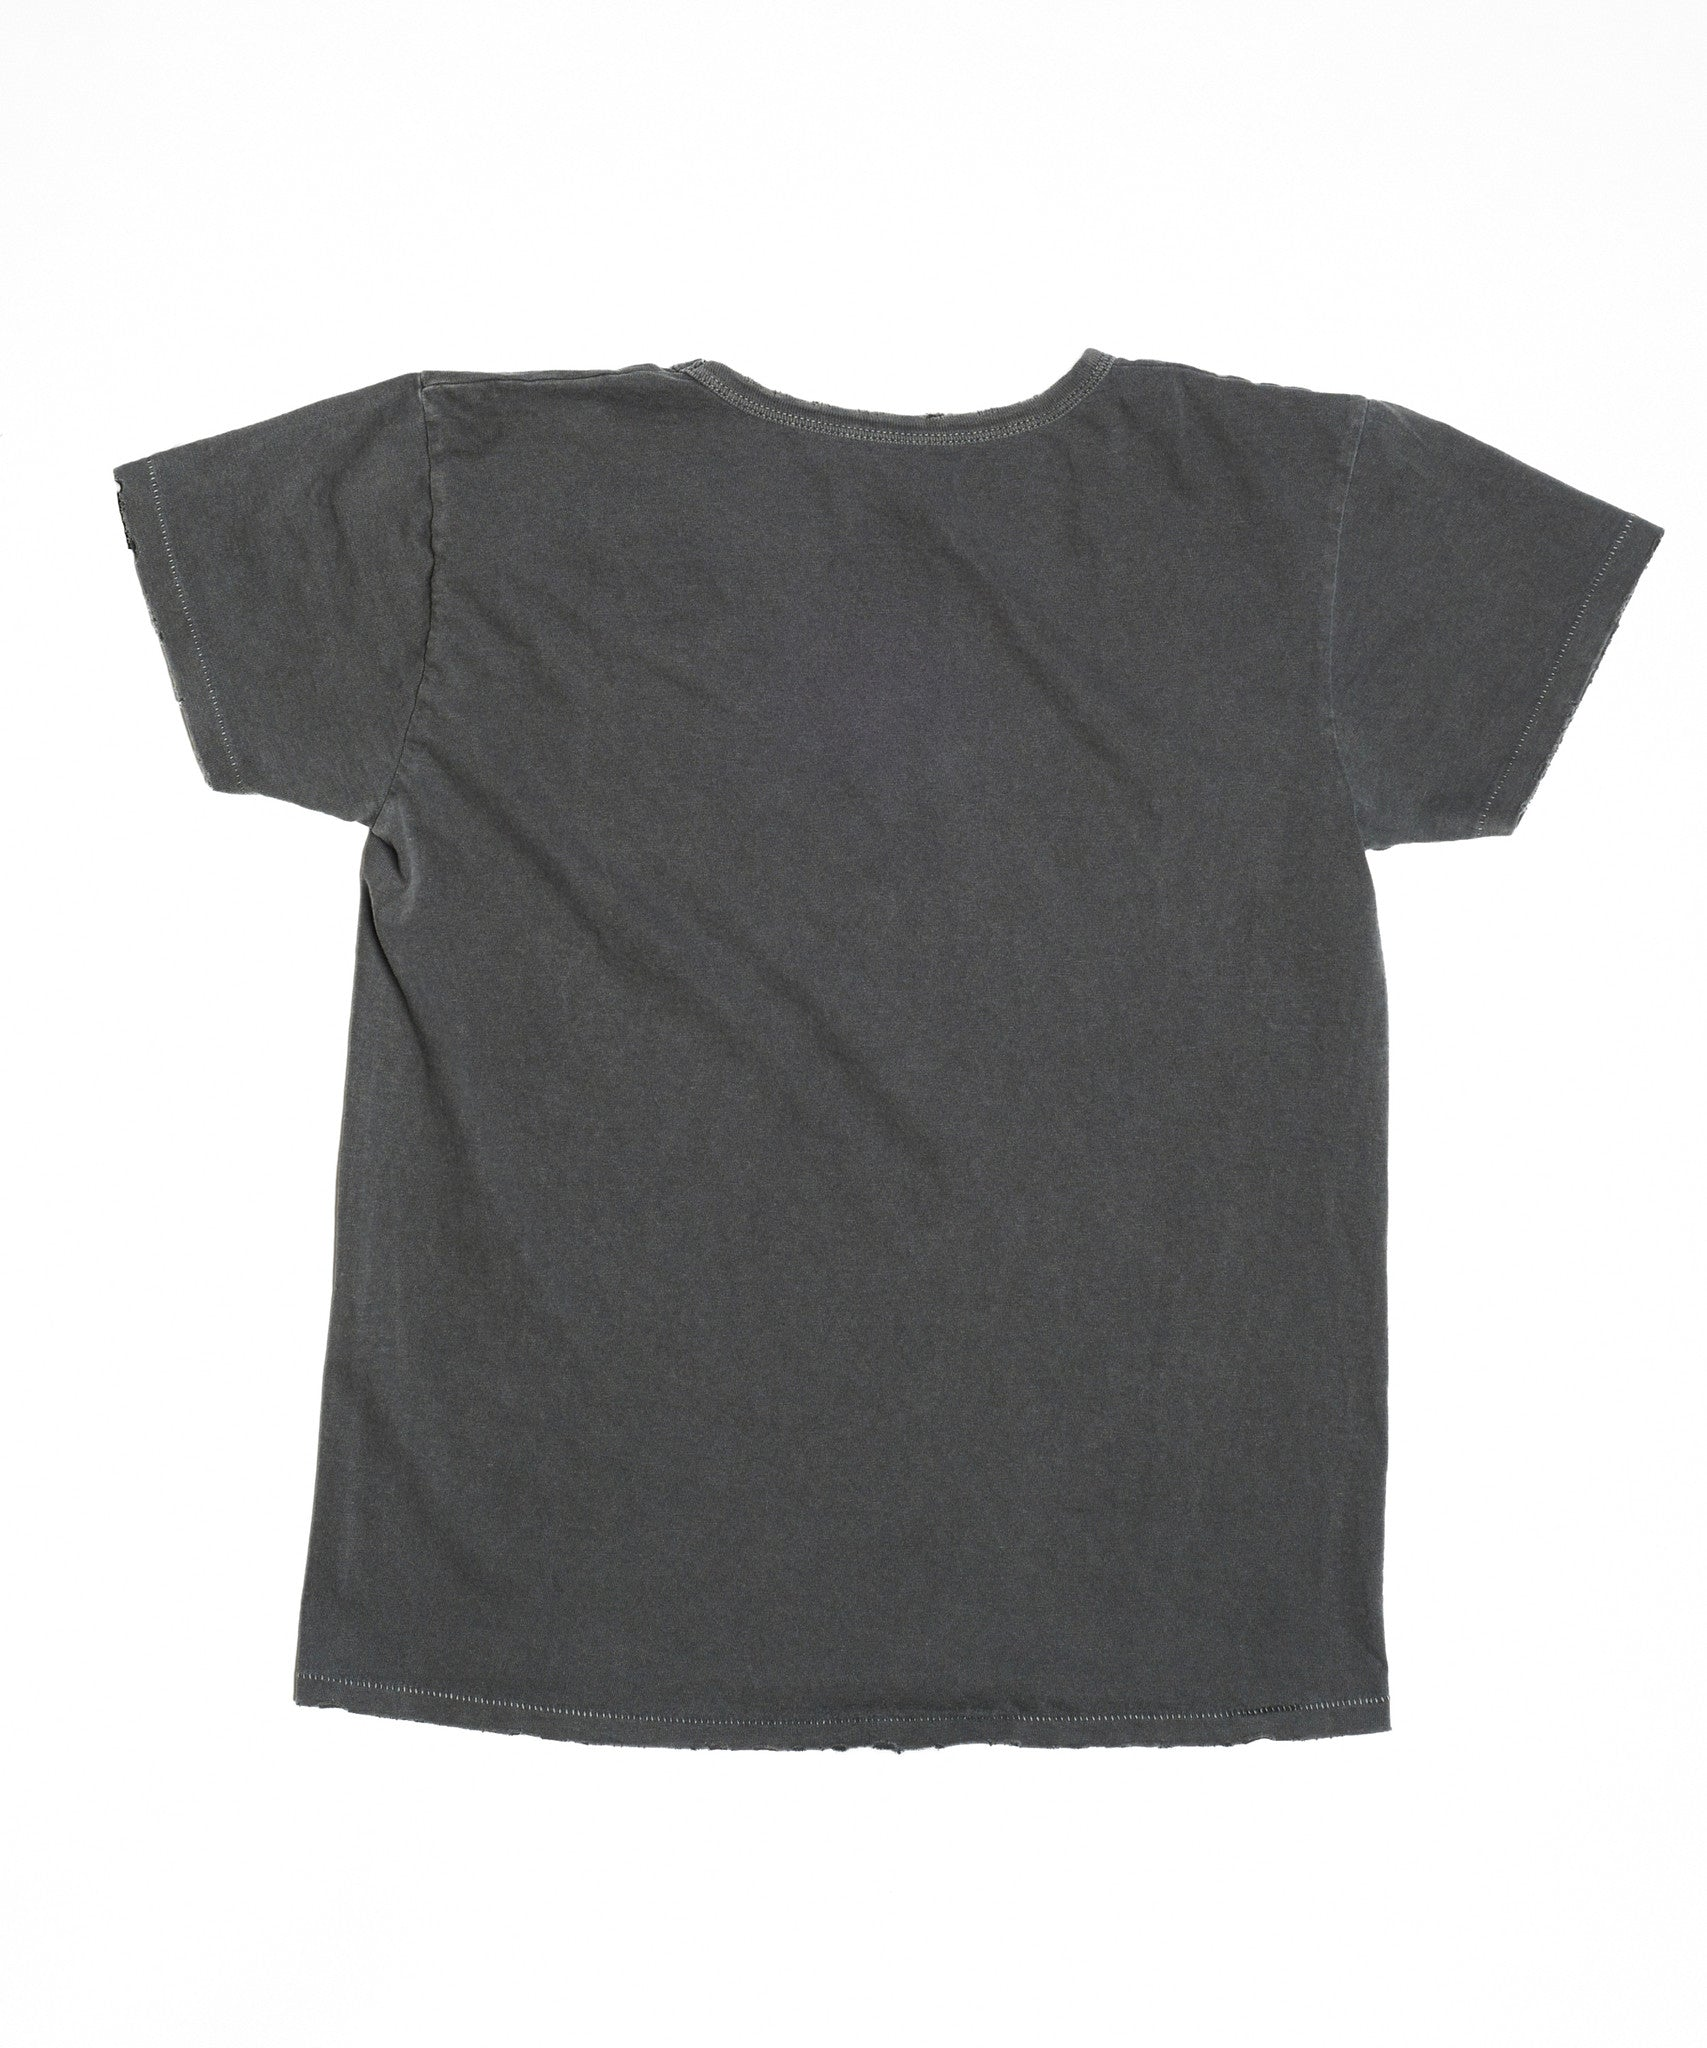 Lone Star Men's Crew - Vintage Black